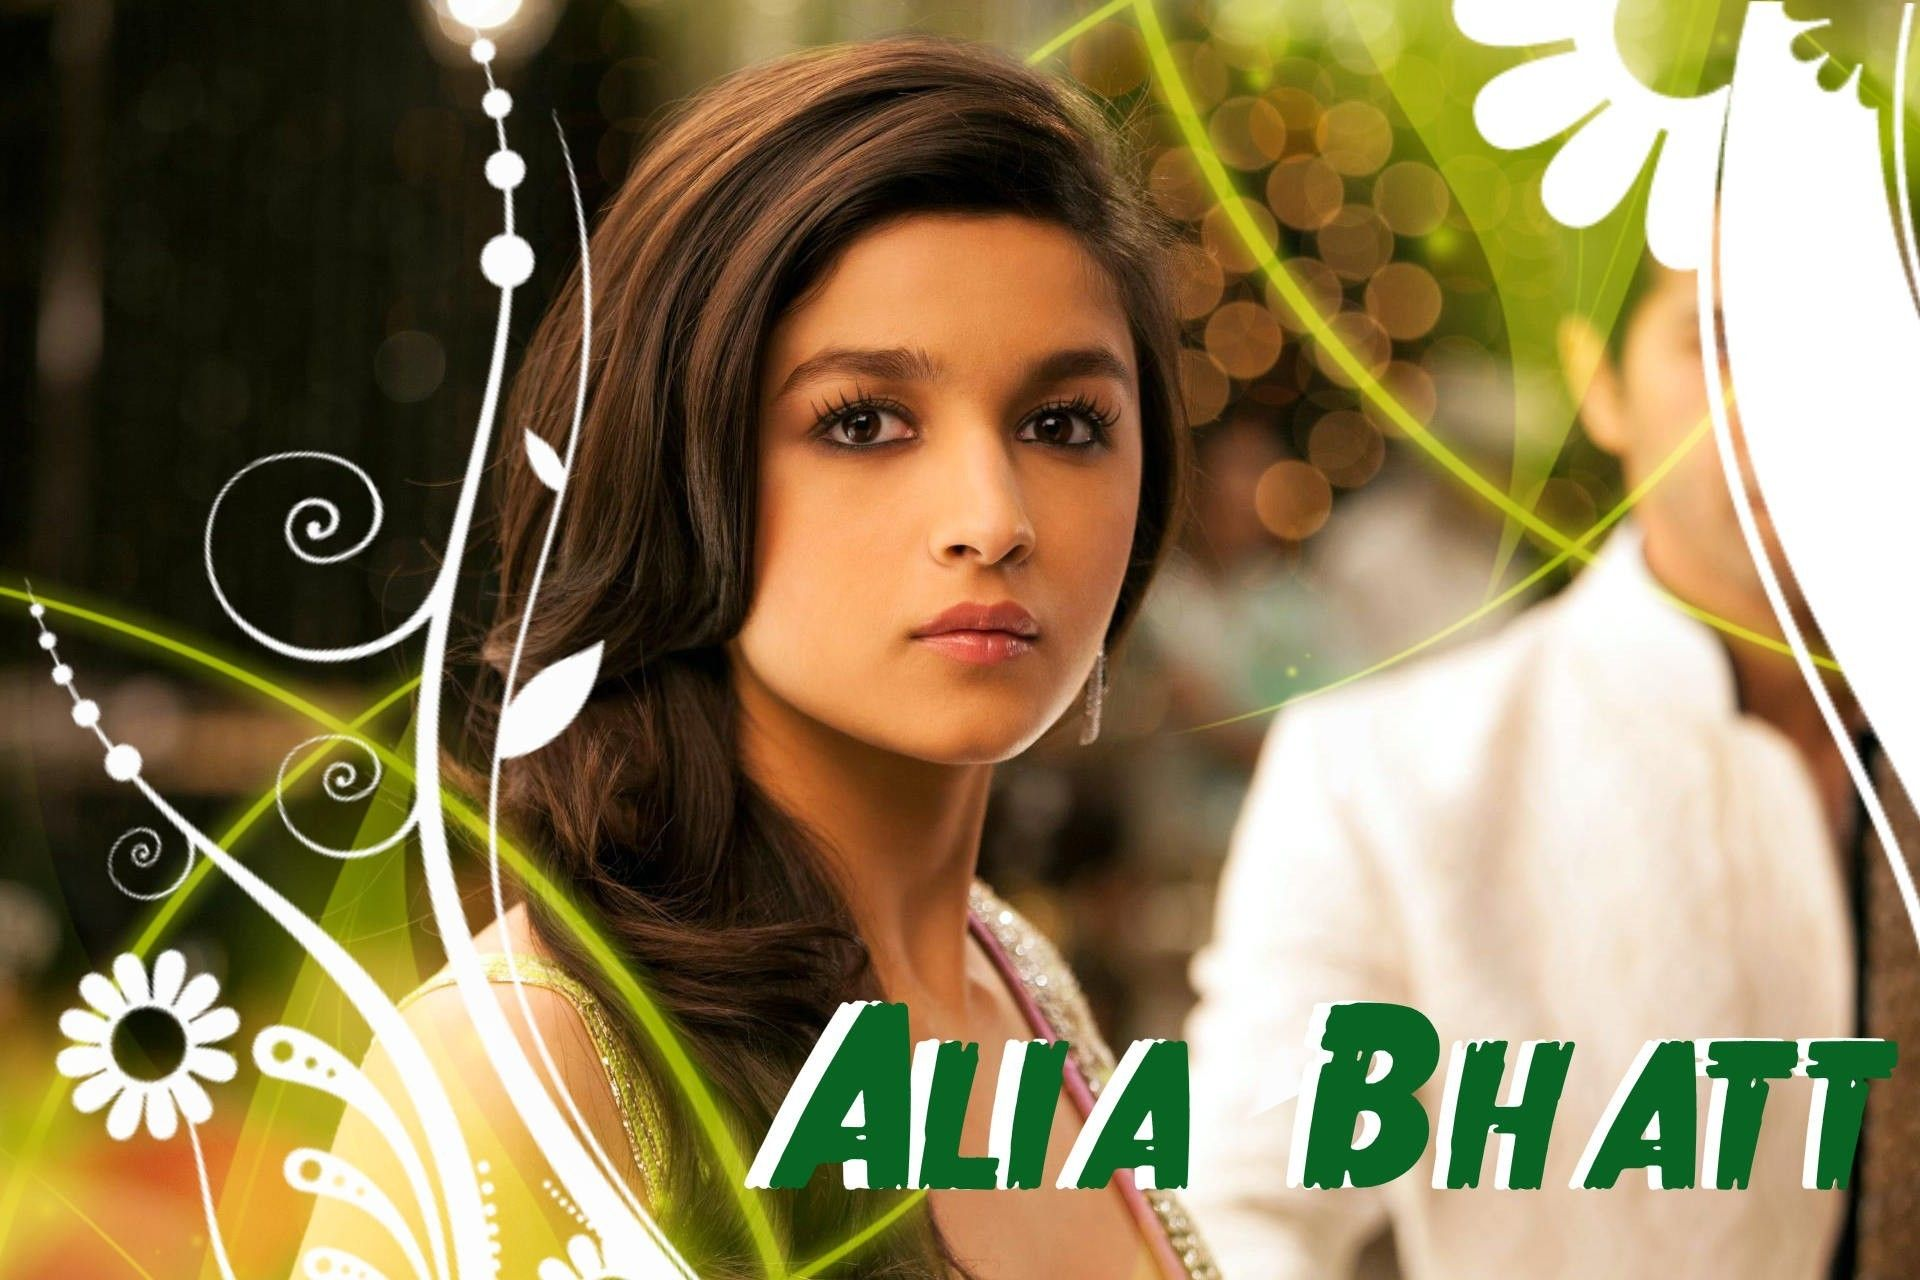 Wallpaper download bollywood actors - Bollywood Heroine Wallpapers Images Wallpapers Pinterest Alia Bhatt And Wallpaper